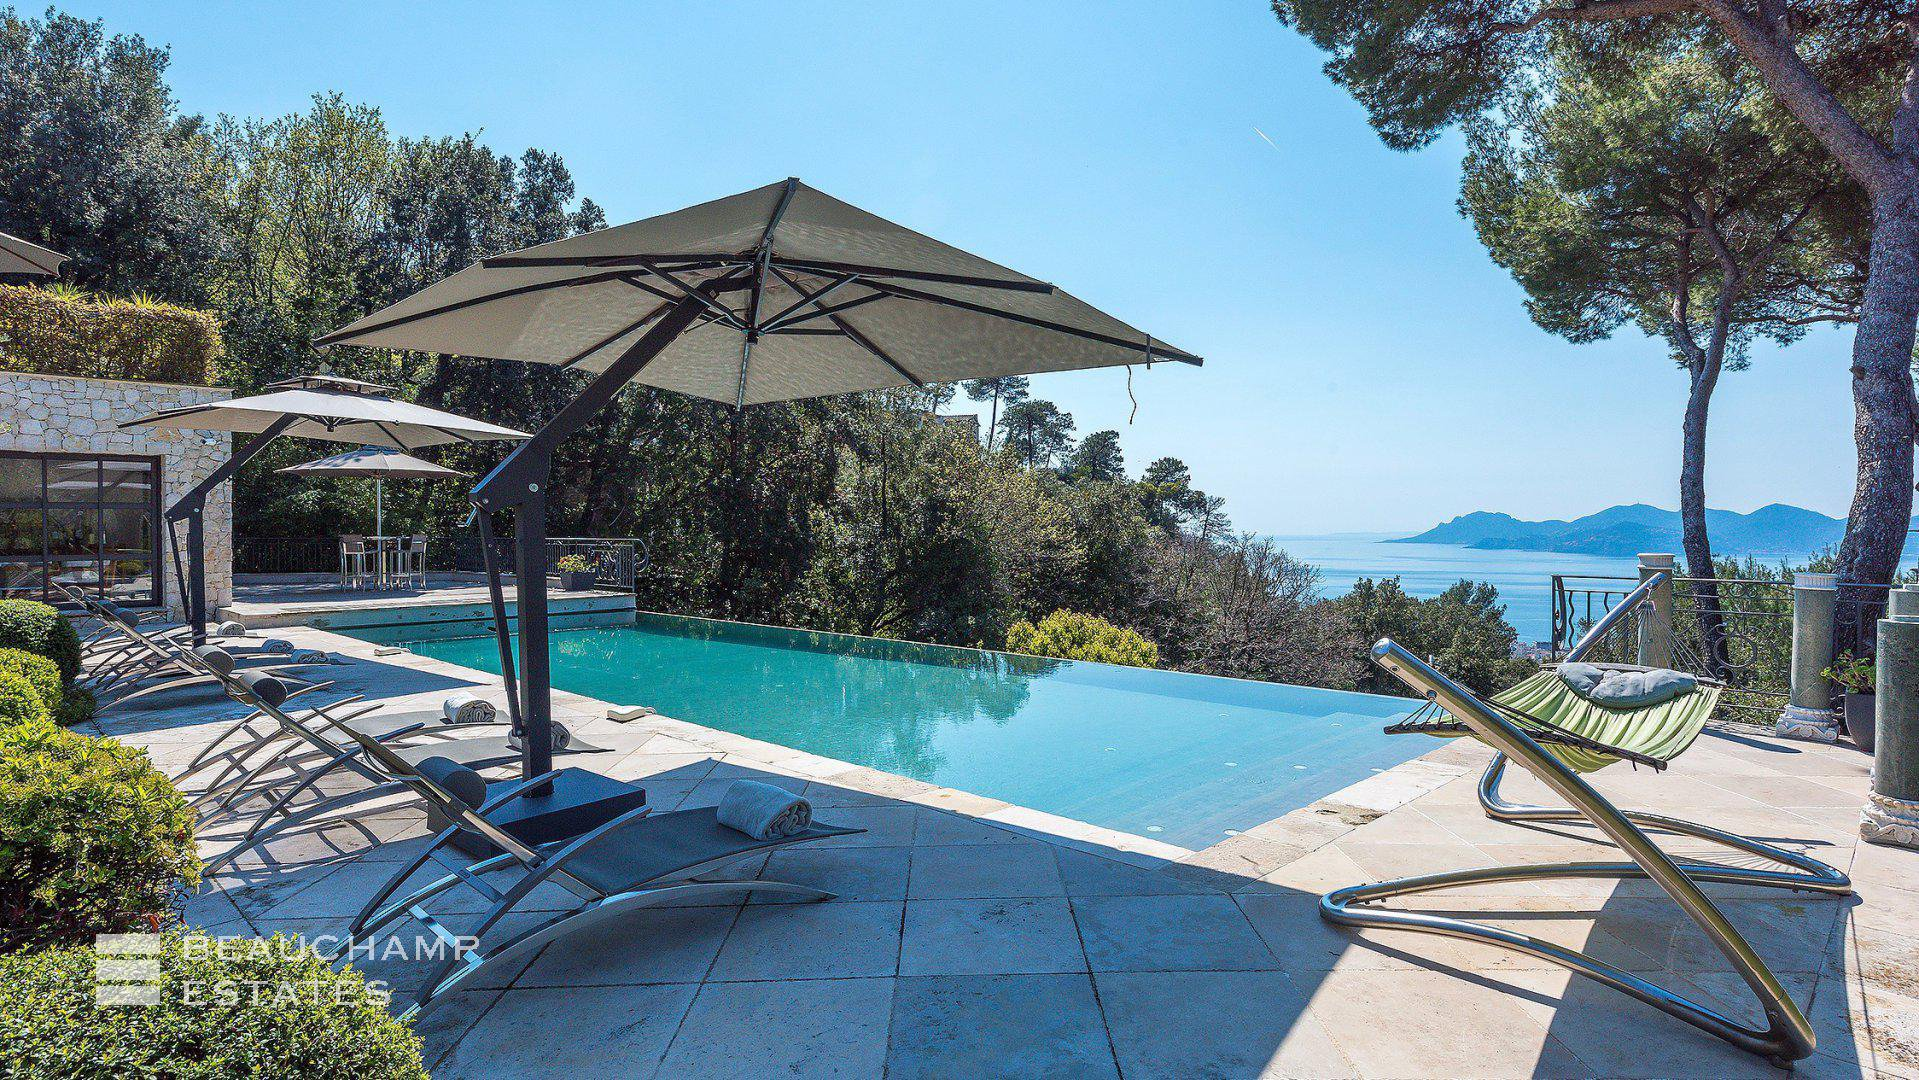 Magnificent 7 Bedroom Holiday Villa Set in the Hills around Super Cannes